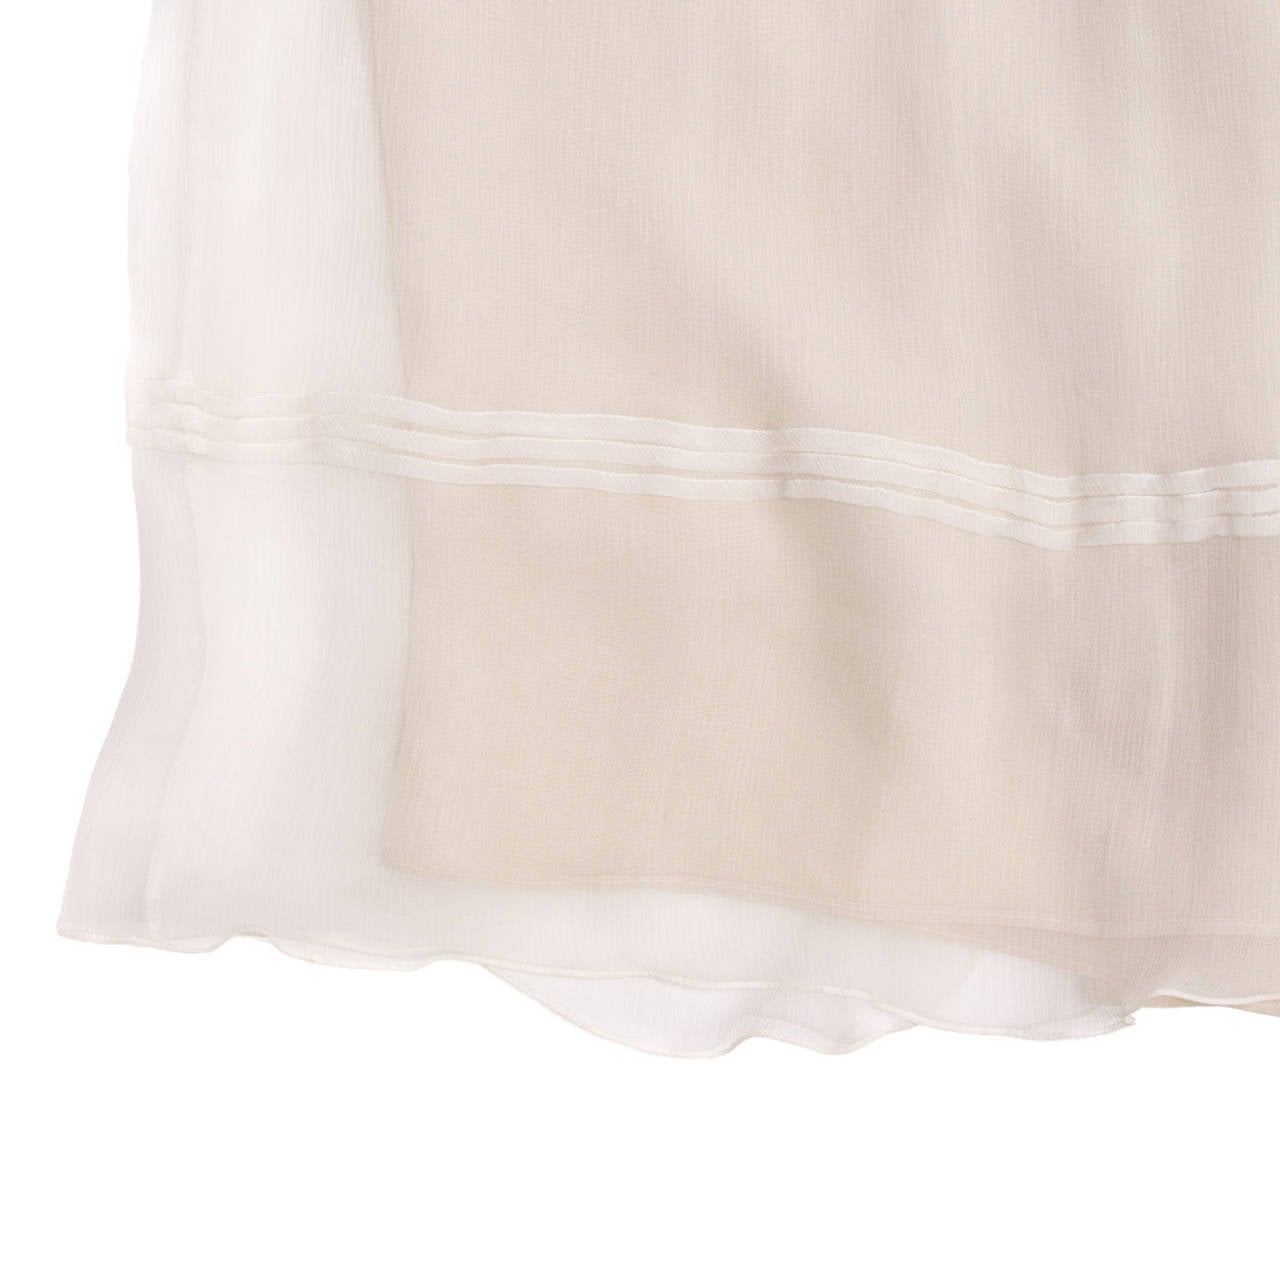 Burberry Ivory Crinkled Silk Chiffon Dress With Tie Neck 4